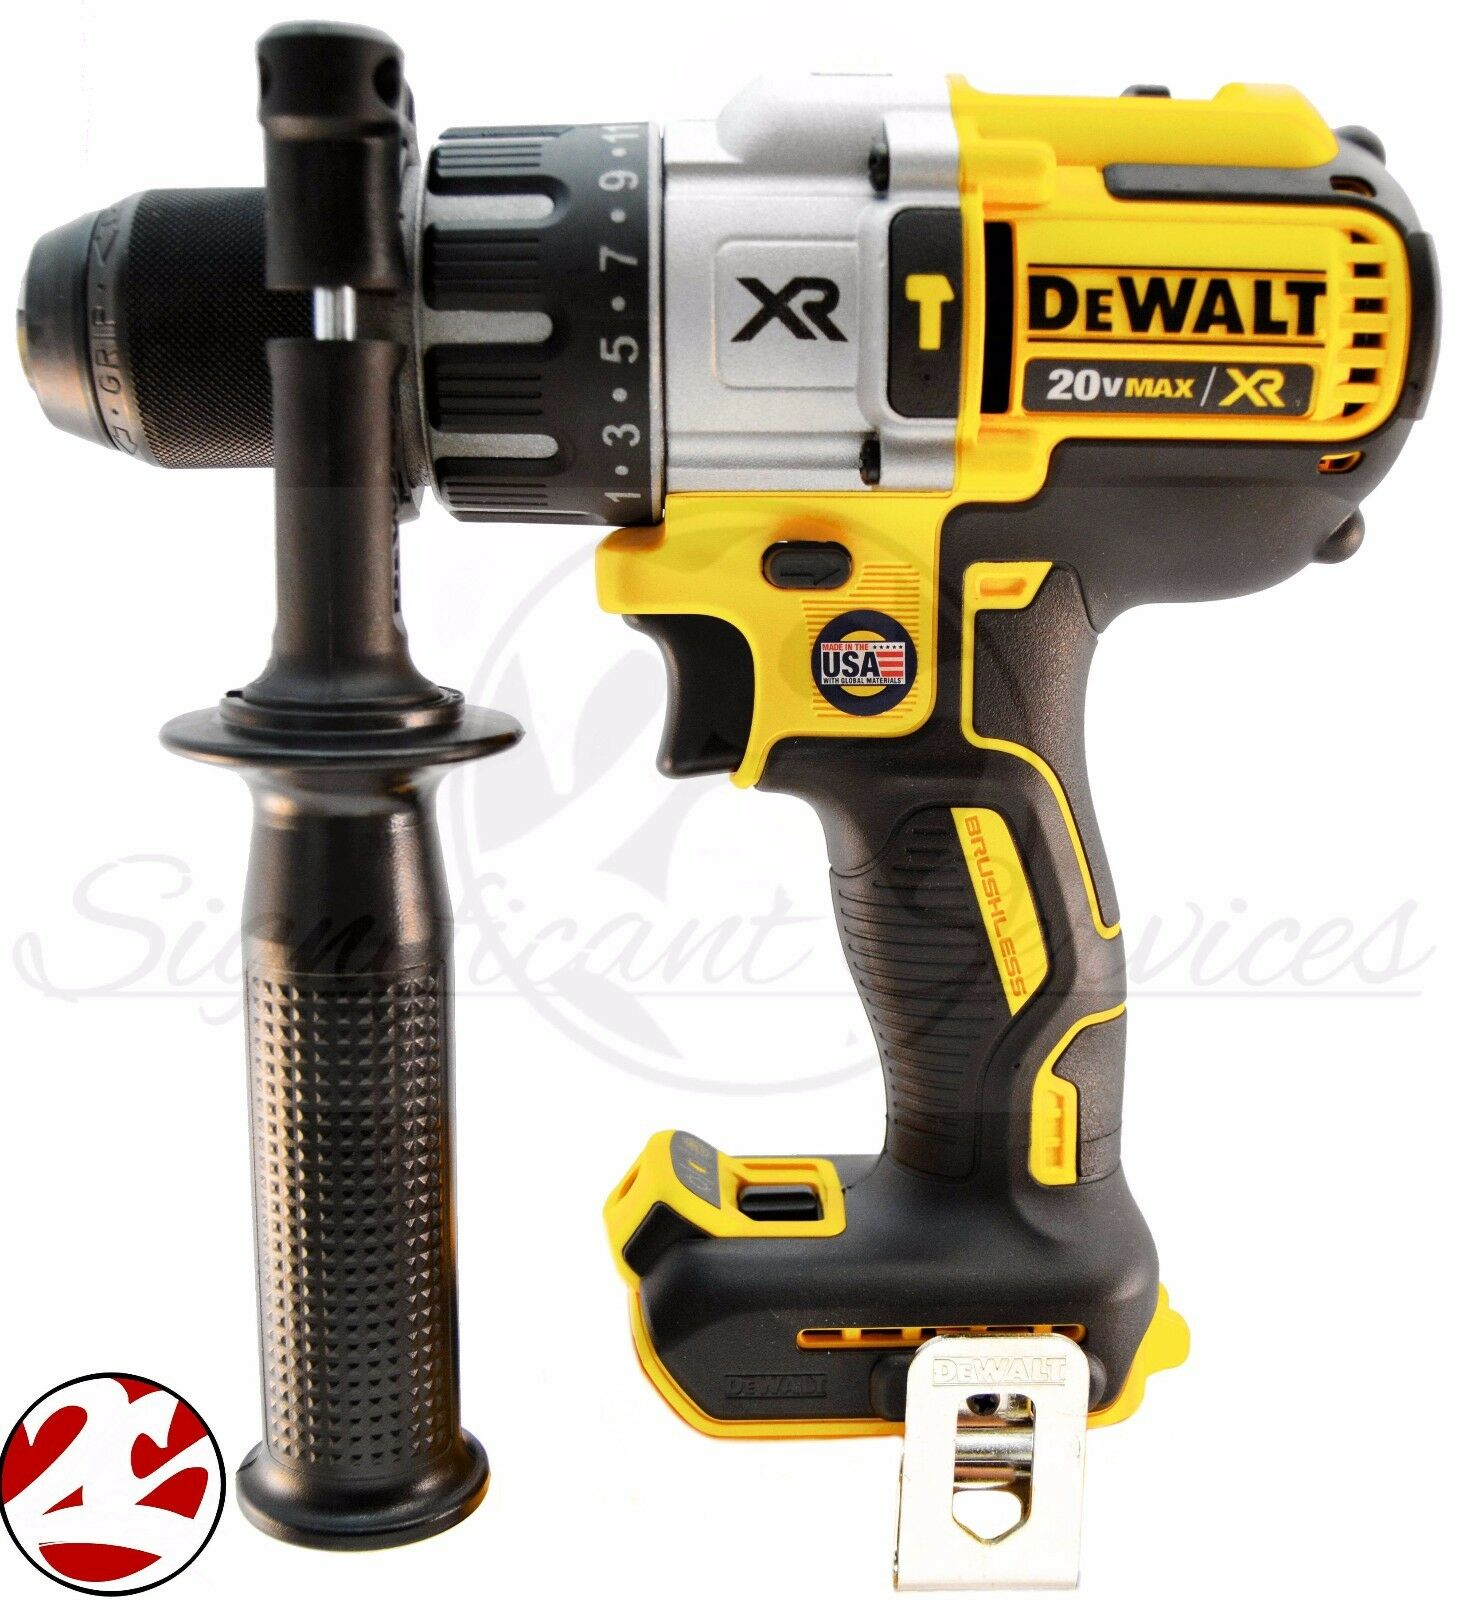 Dewalt dcd996 20v max xr cordless li ion brushless 3 speed for Dewalt 20v brushless motor